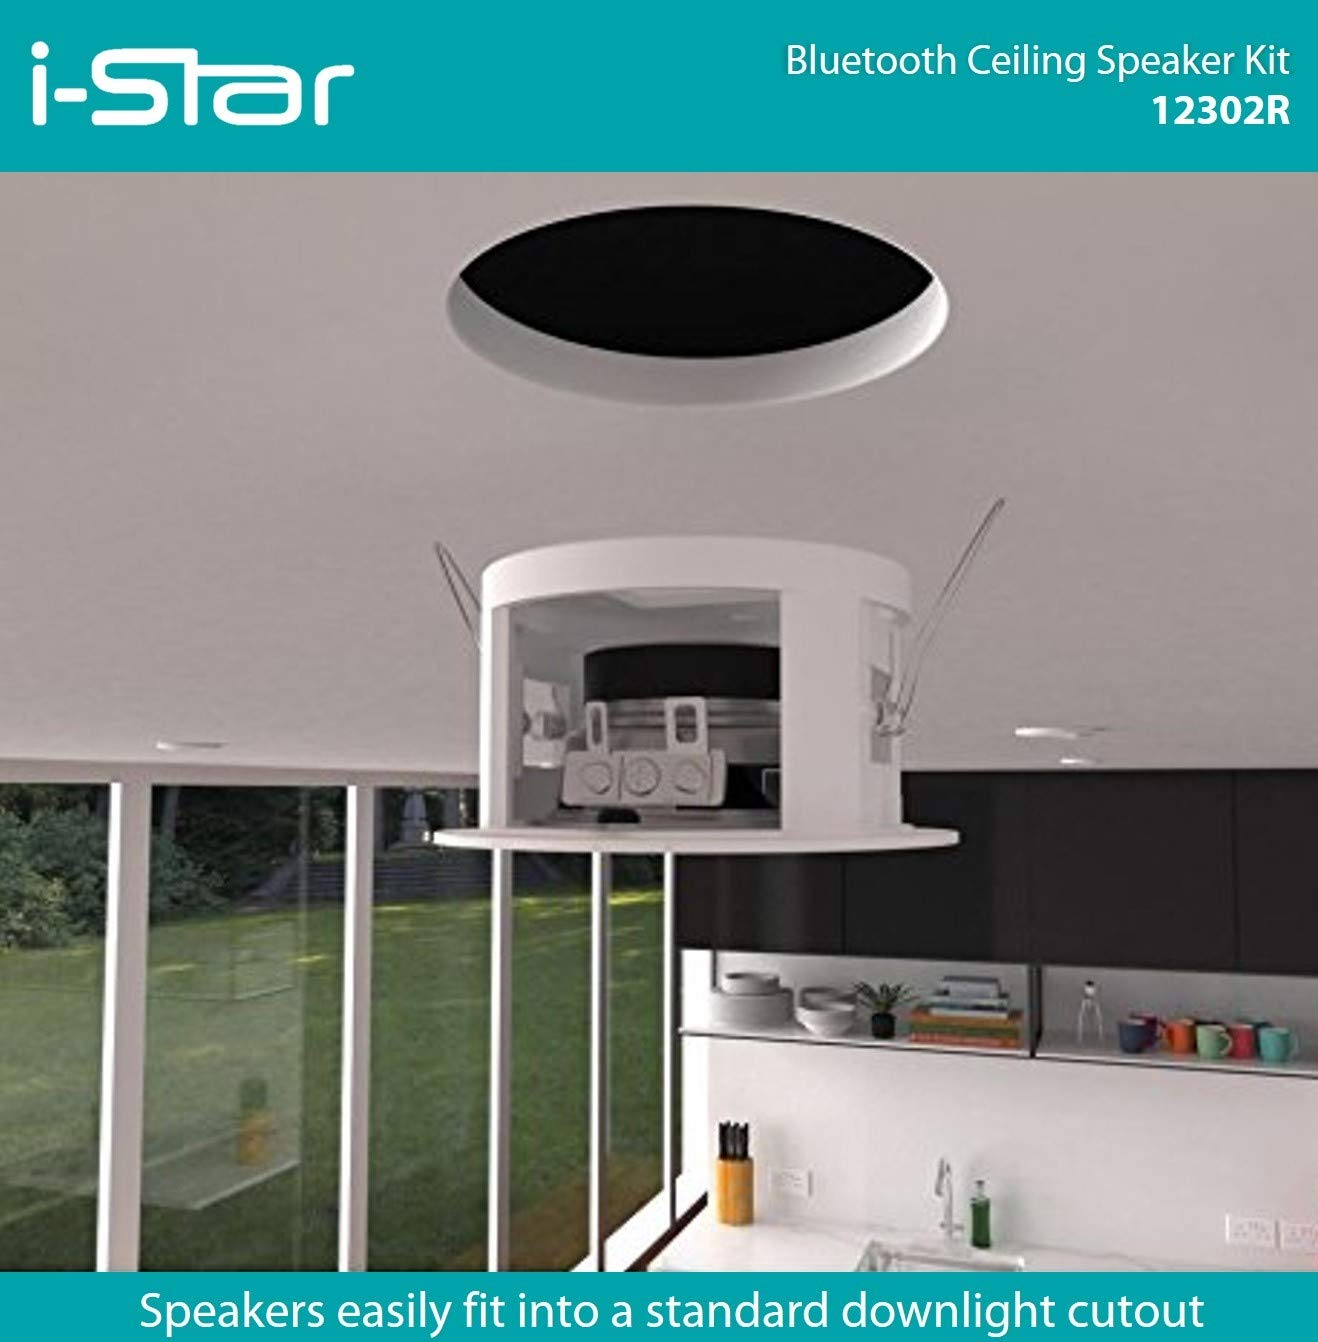 Istar Ceiling Bluetooth Speakers Complete Kit Easy To Amazonco Shower Speaker Wiring Diagram Electronics